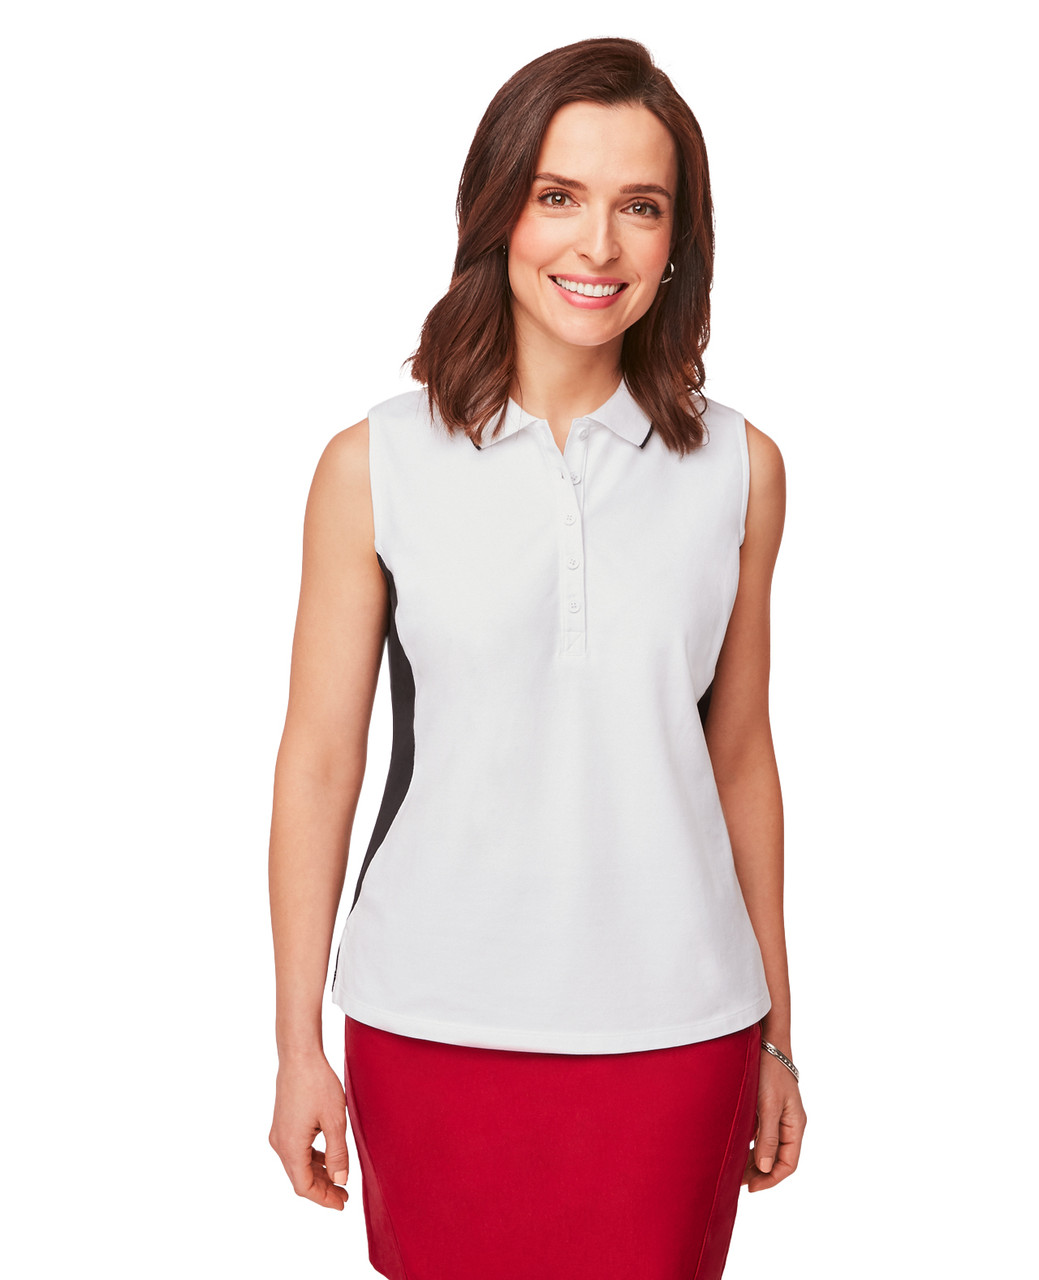 b8946d3c27 White and Black Color block Sleeveless Polo Top for Women   Northern ...